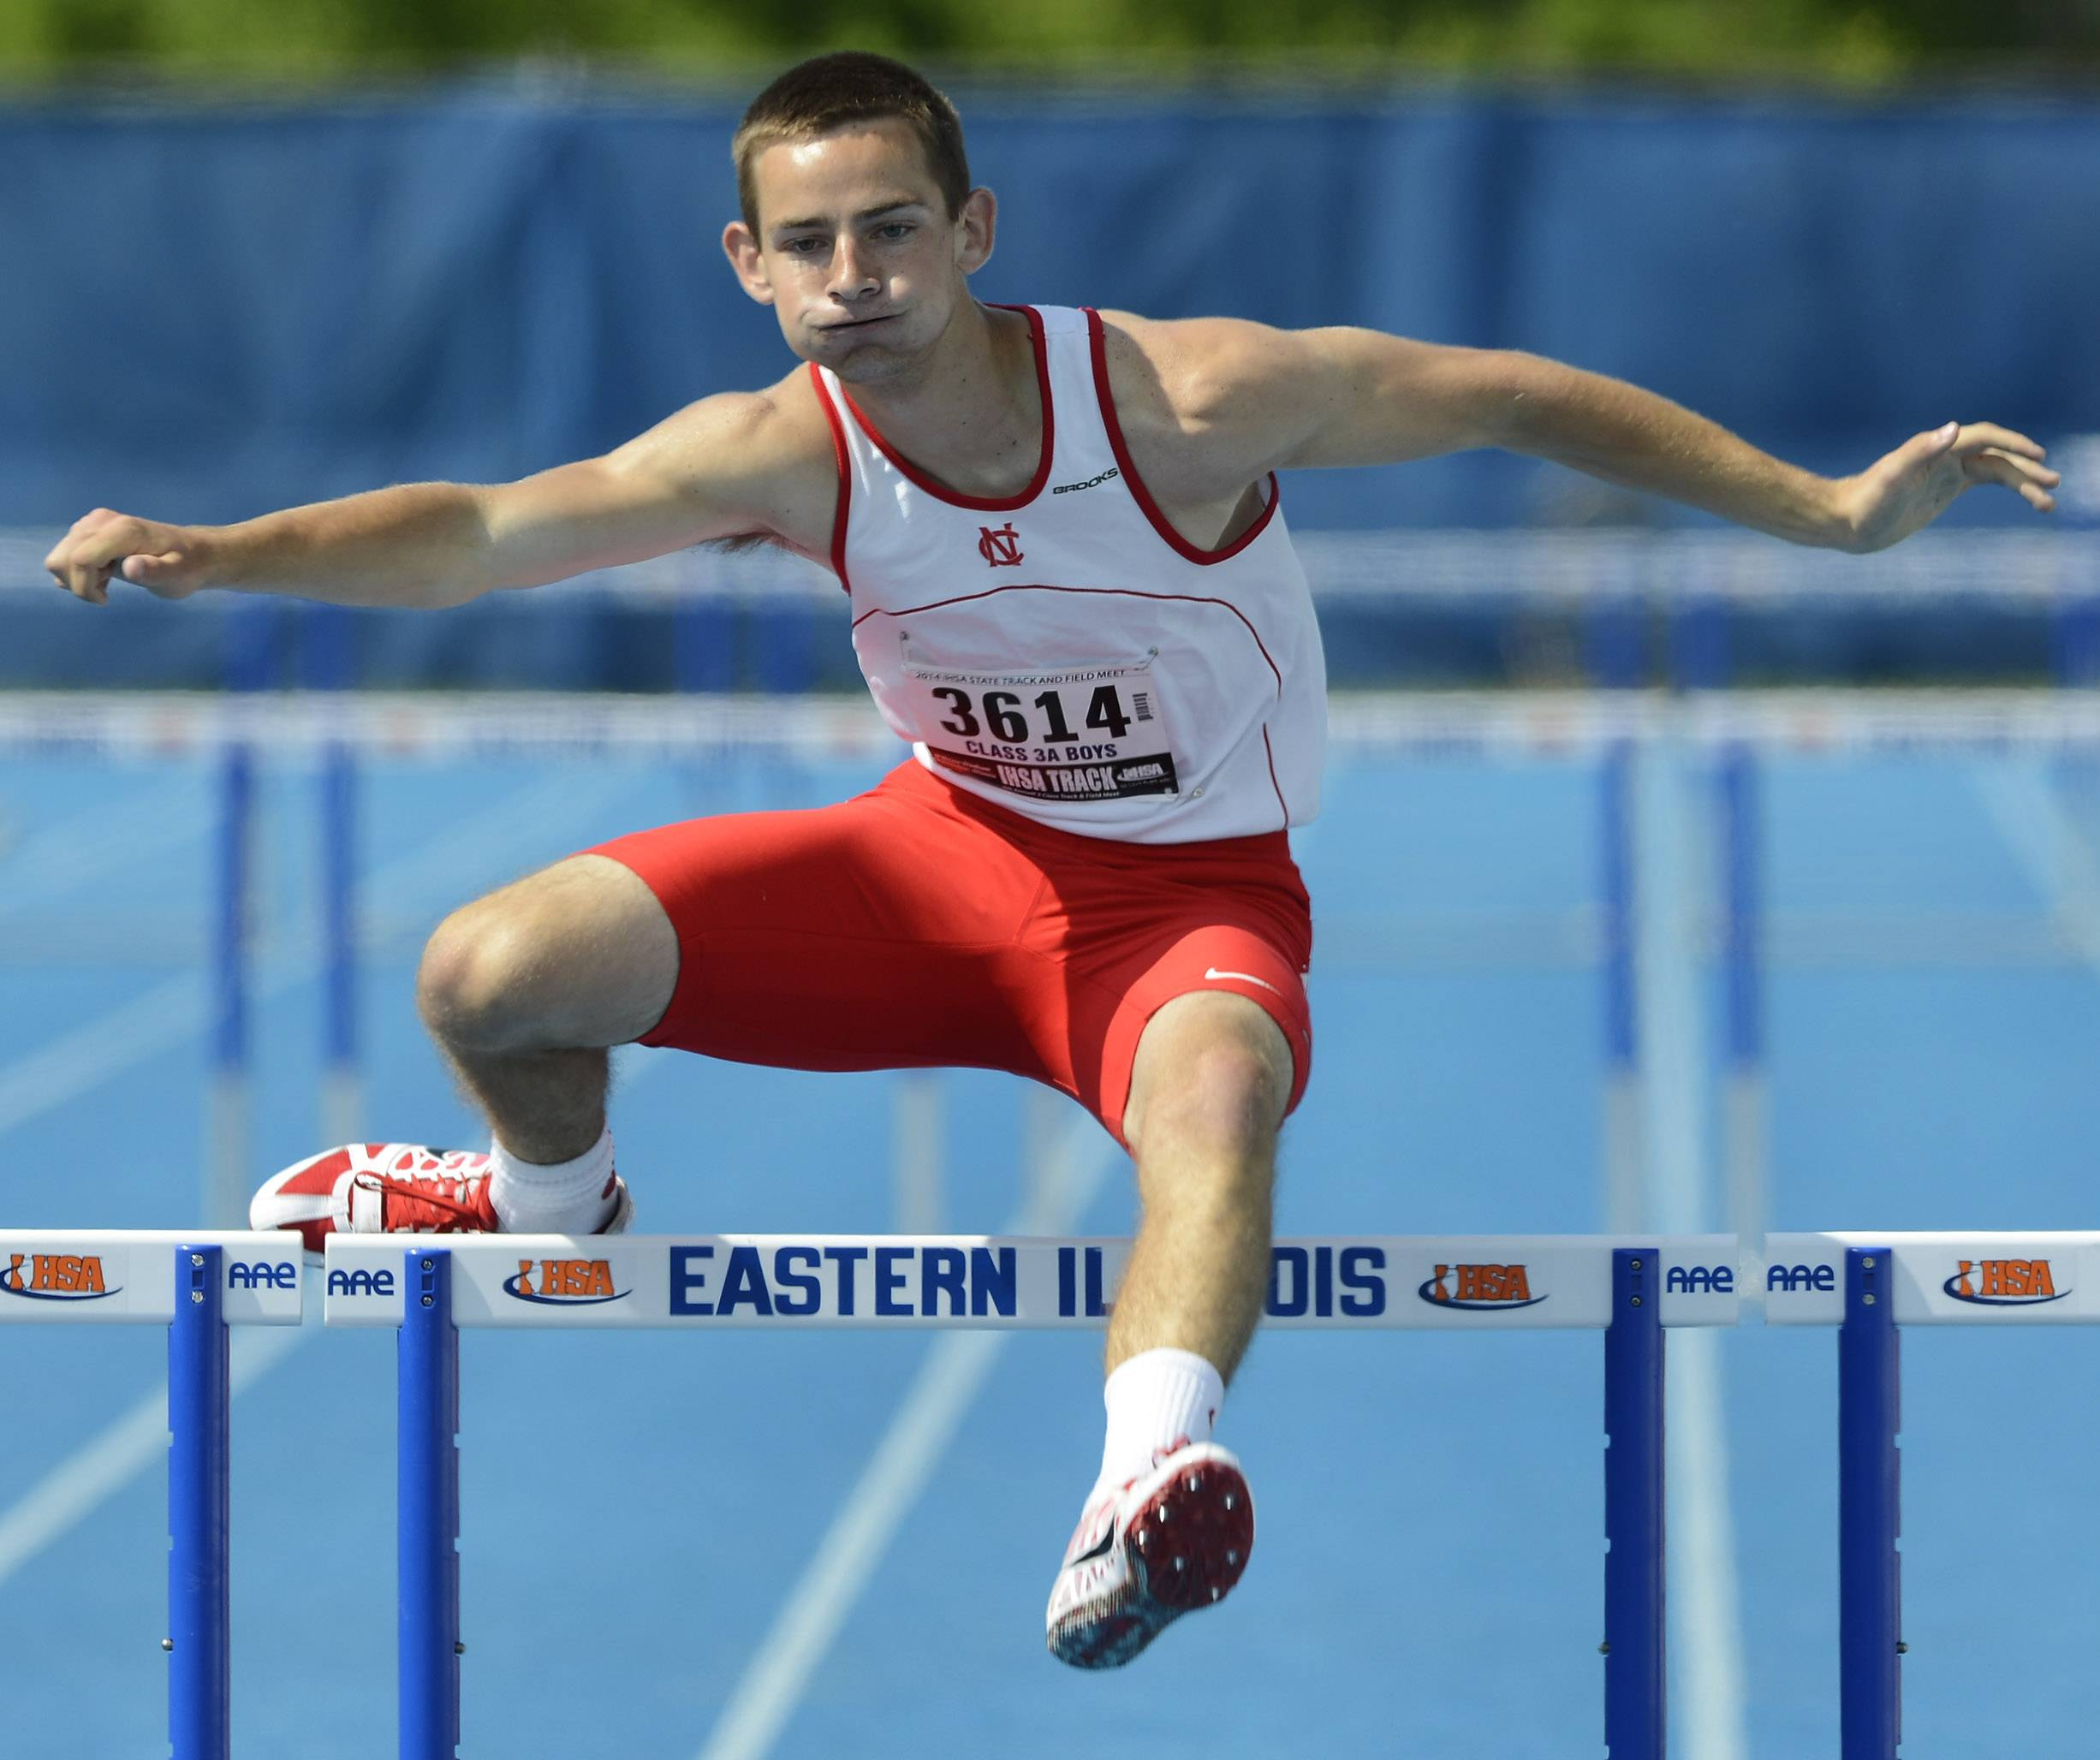 Naperville Central's Michael Jopes crosses the final hurdle while competing in the 300-meter intermediate hurdles during the boys Class 3A state track and field preliminaries in Charleston Friday.